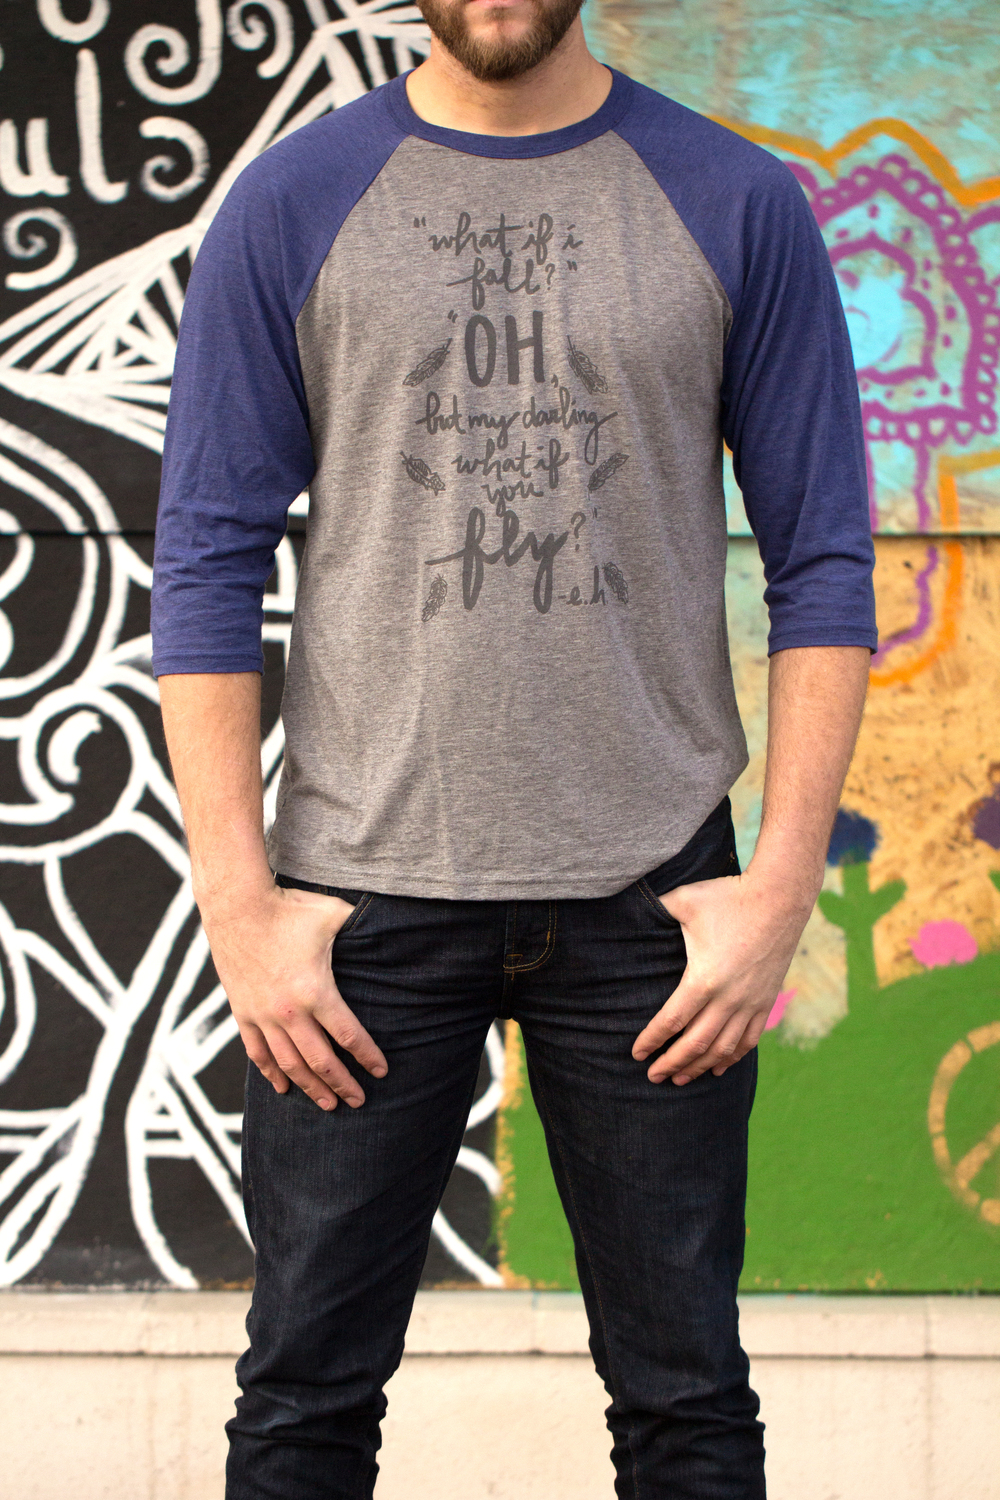 Give Hope Unisex Baseball Tee  $5.55 is donated to The Sparrow's Nest